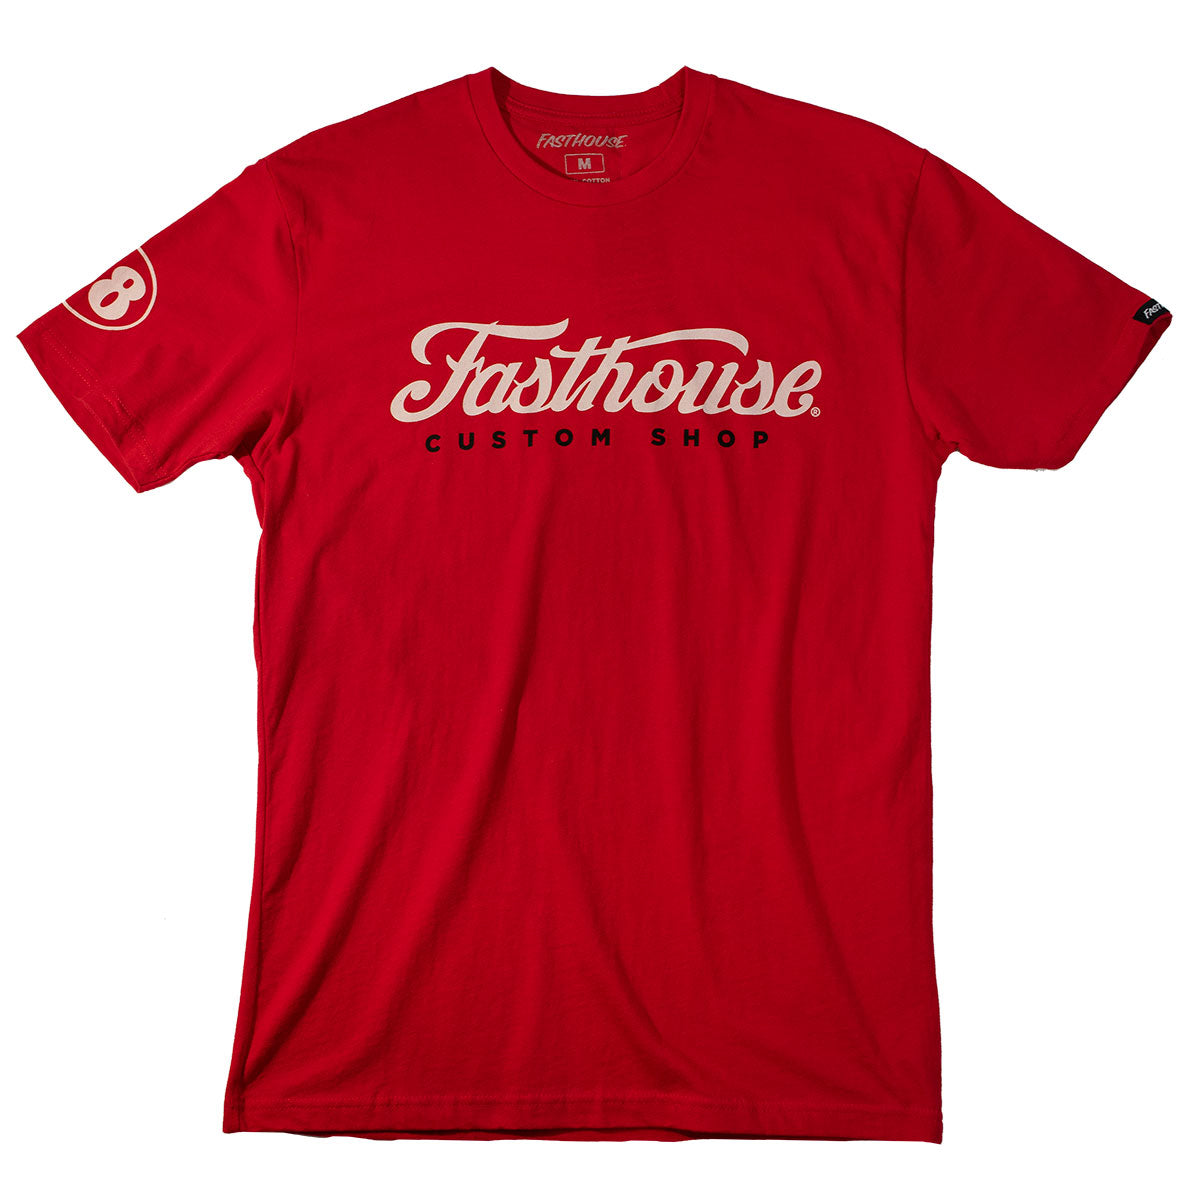 Fasthouse - Morris Tee - Red